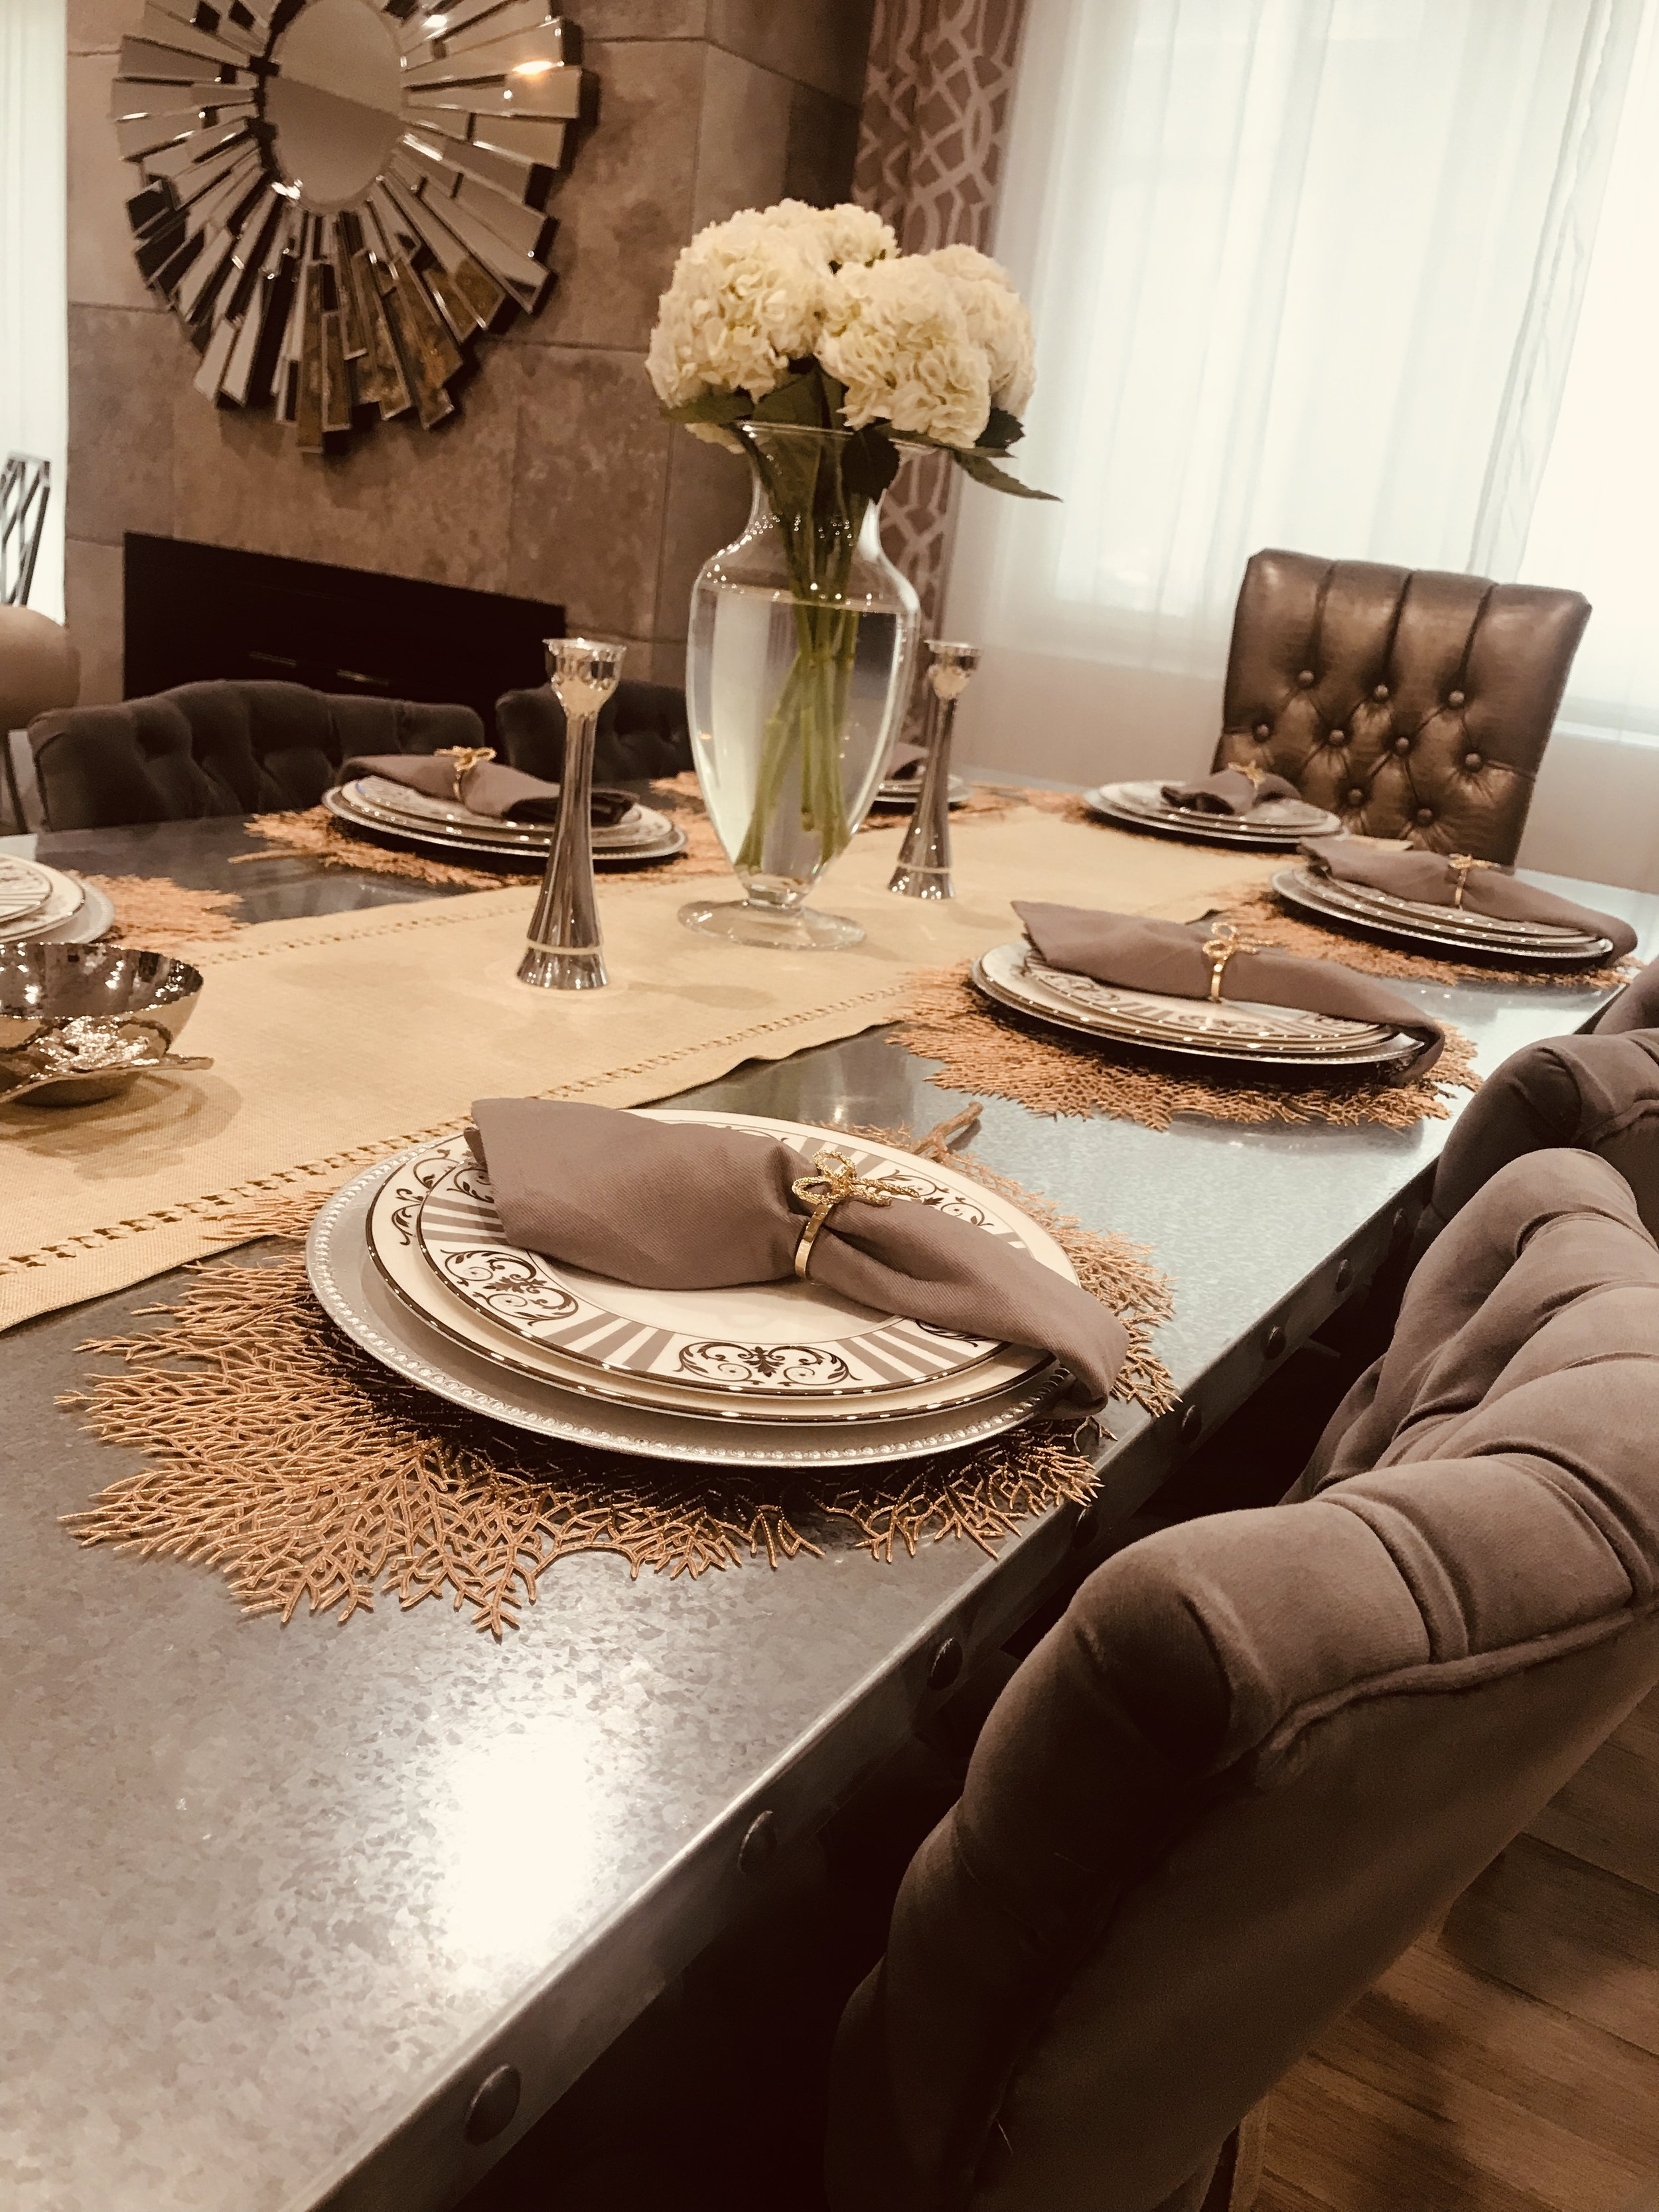 Make sure to add some flowers to your table to complete the look!